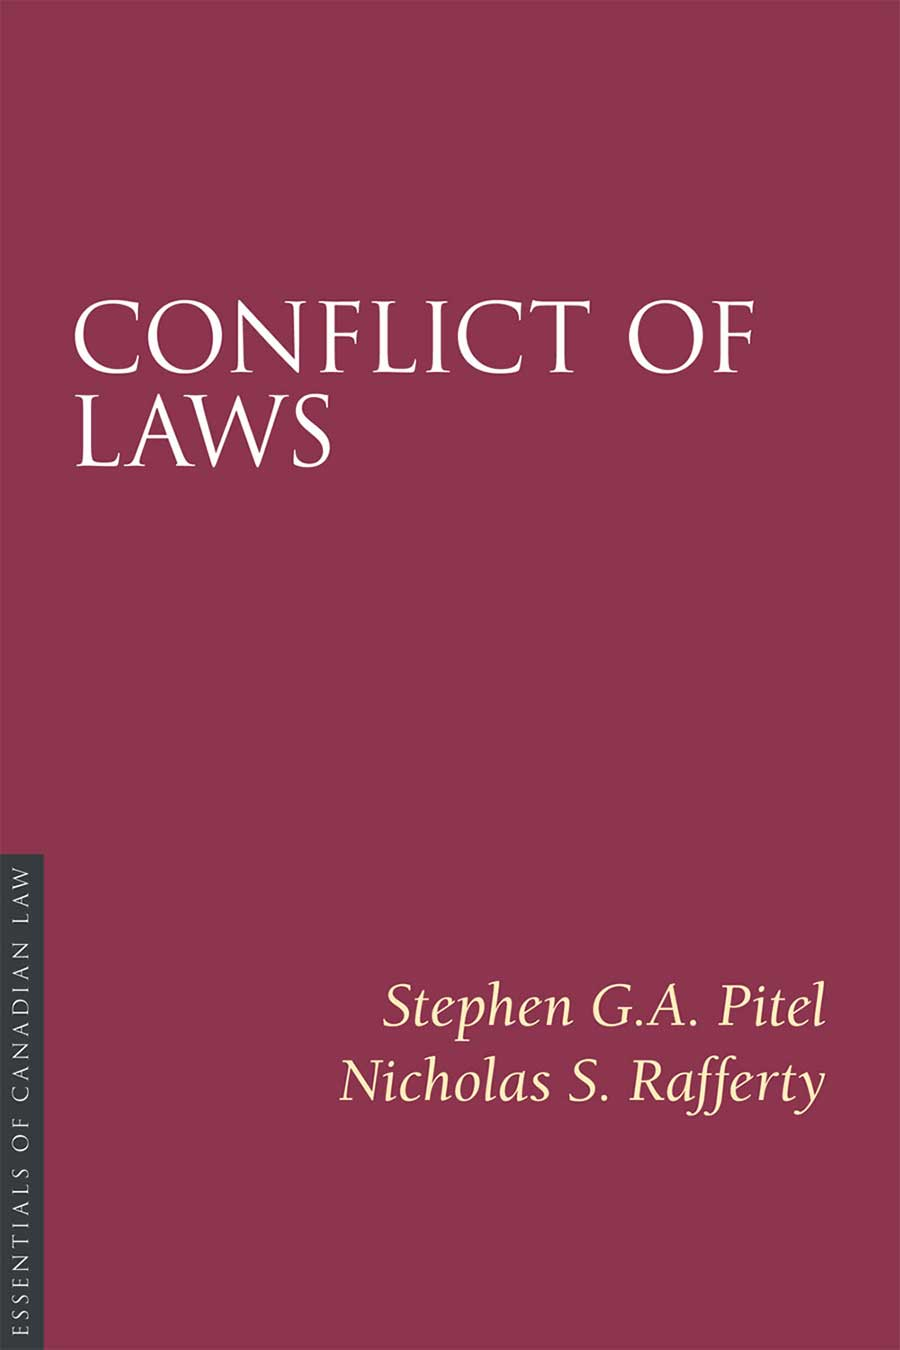 Conflict-of-Laws